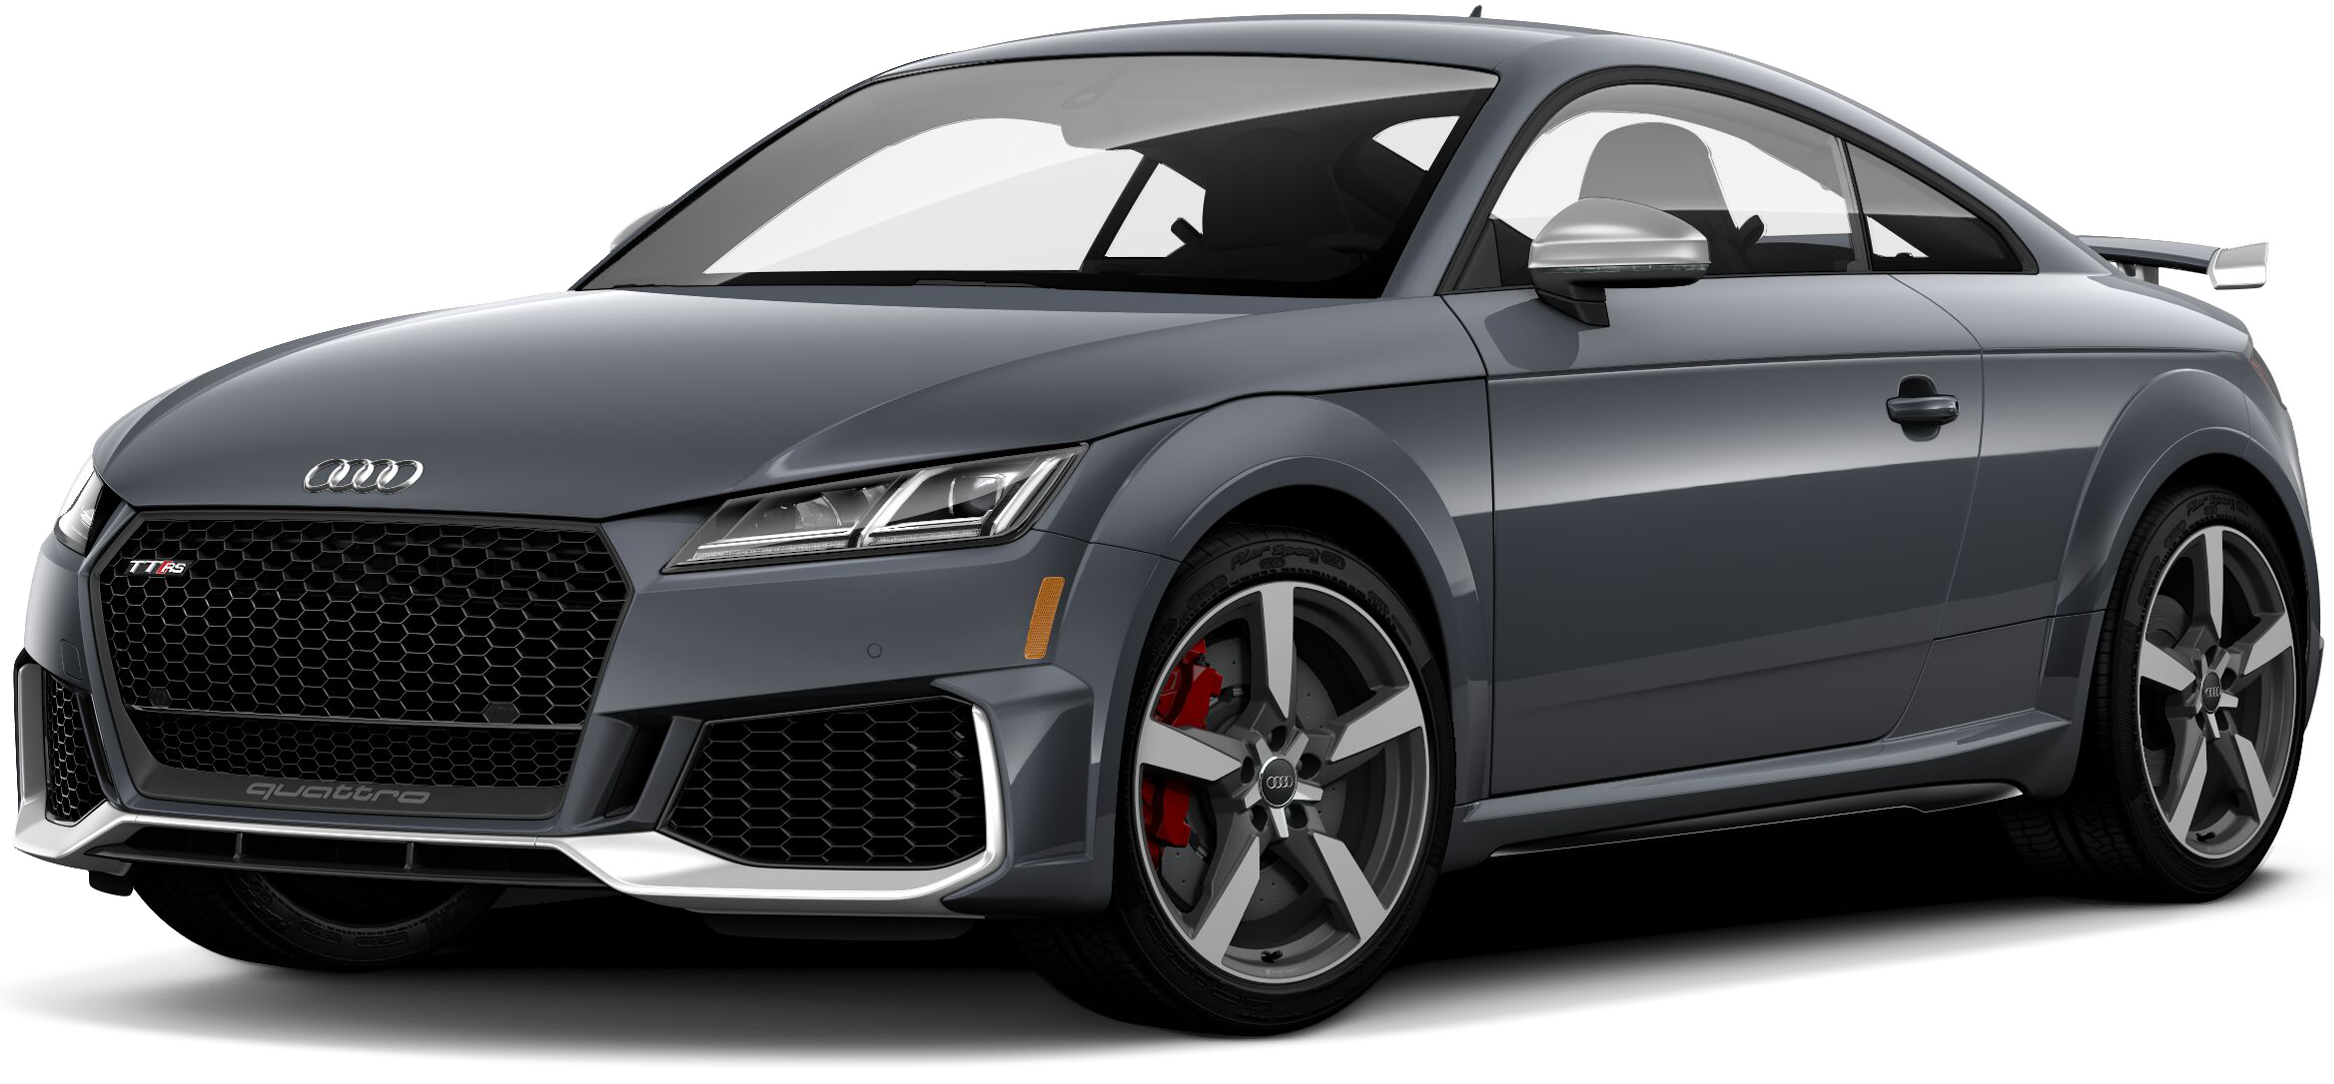 2020 Audi Tt Rs Incentives Specials Offers In Troy Mi